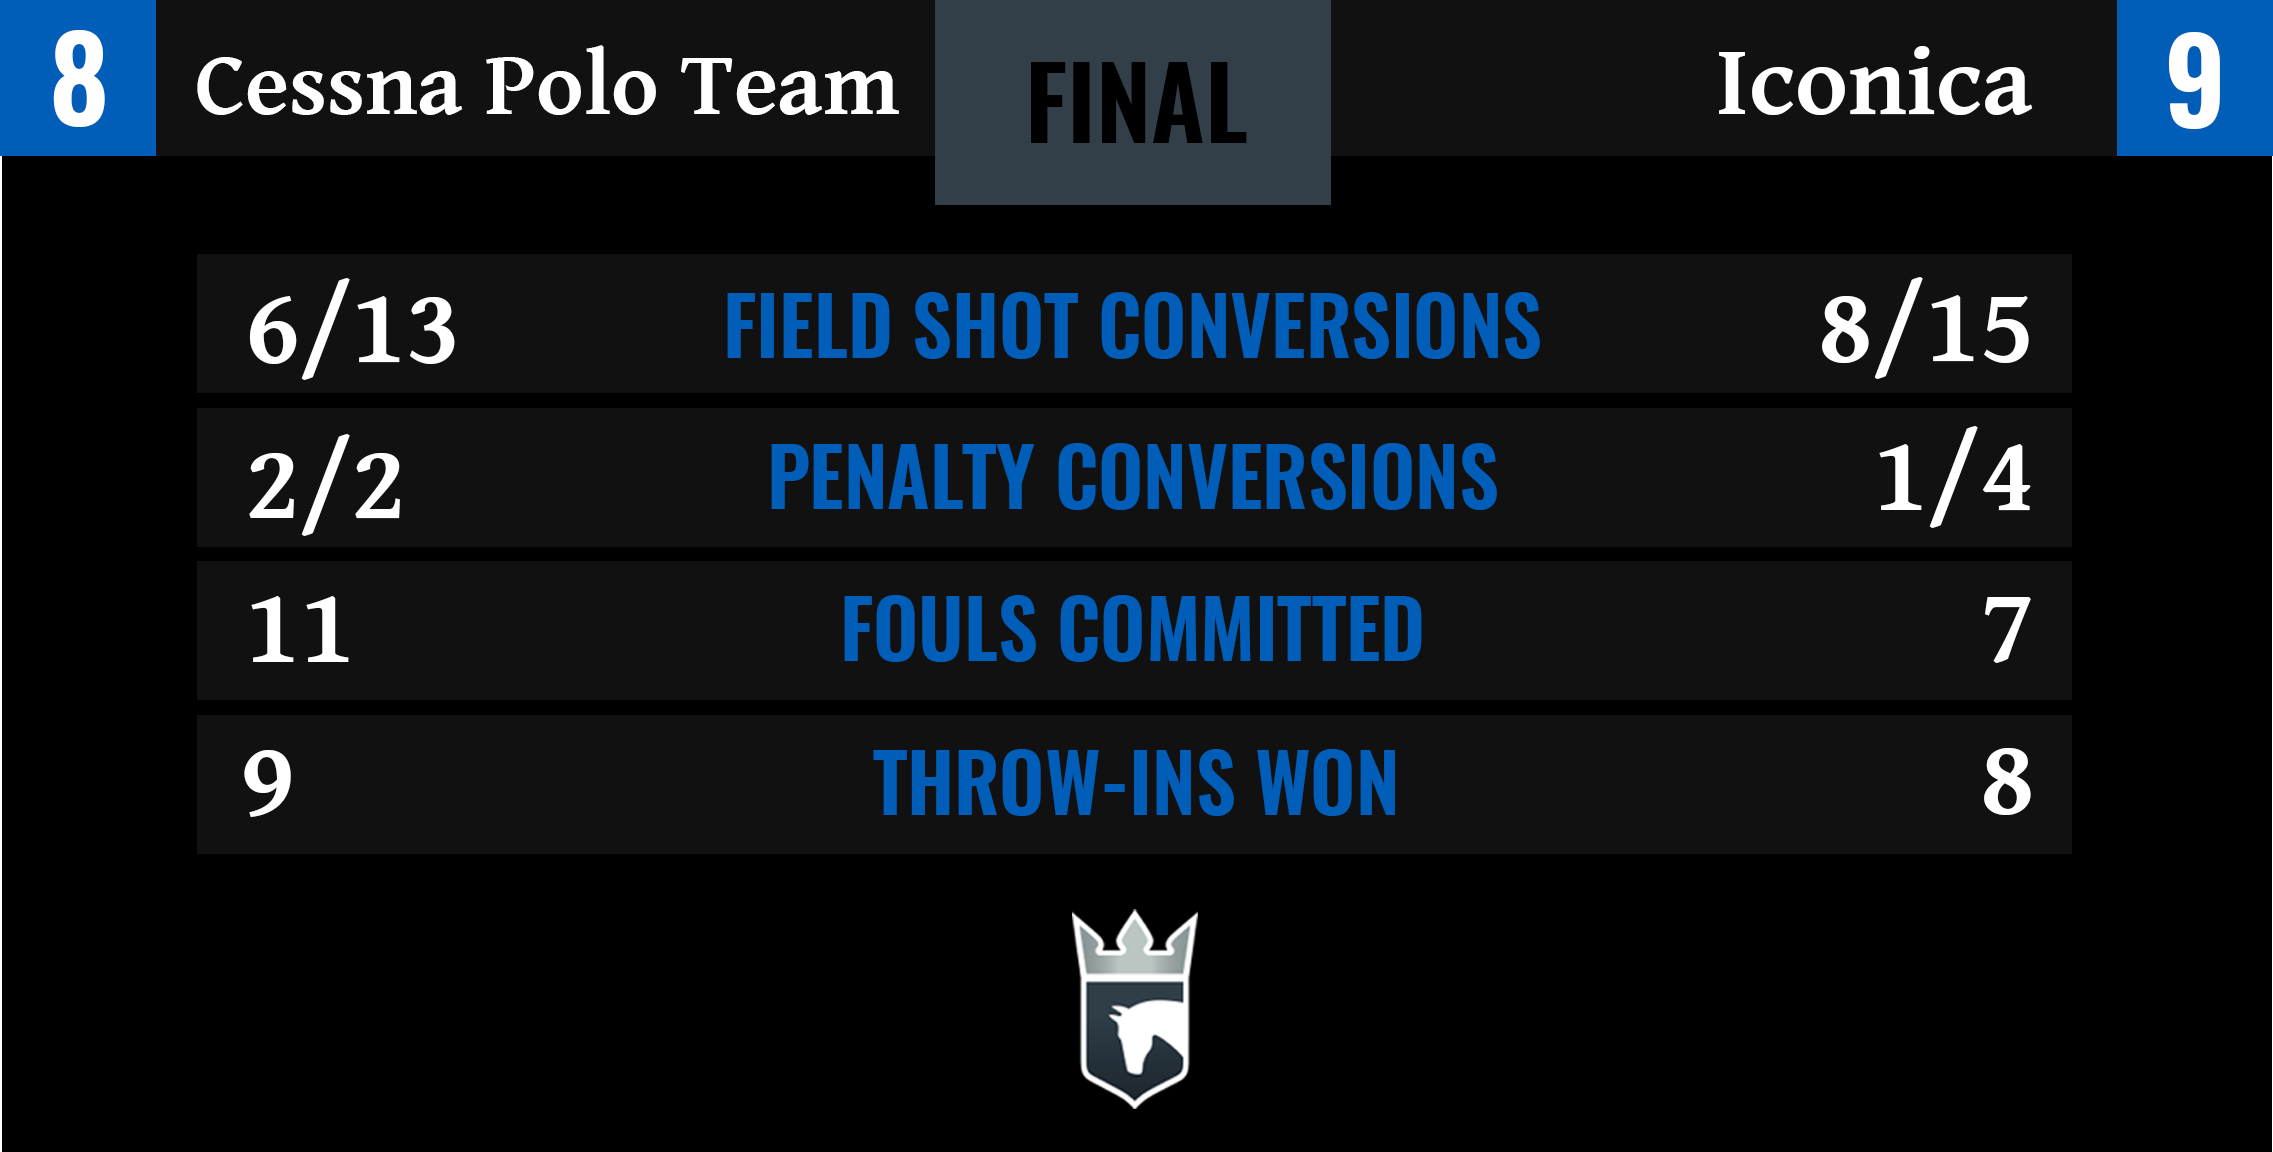 Cessna Polo Team vs Iconica Final Stats-1